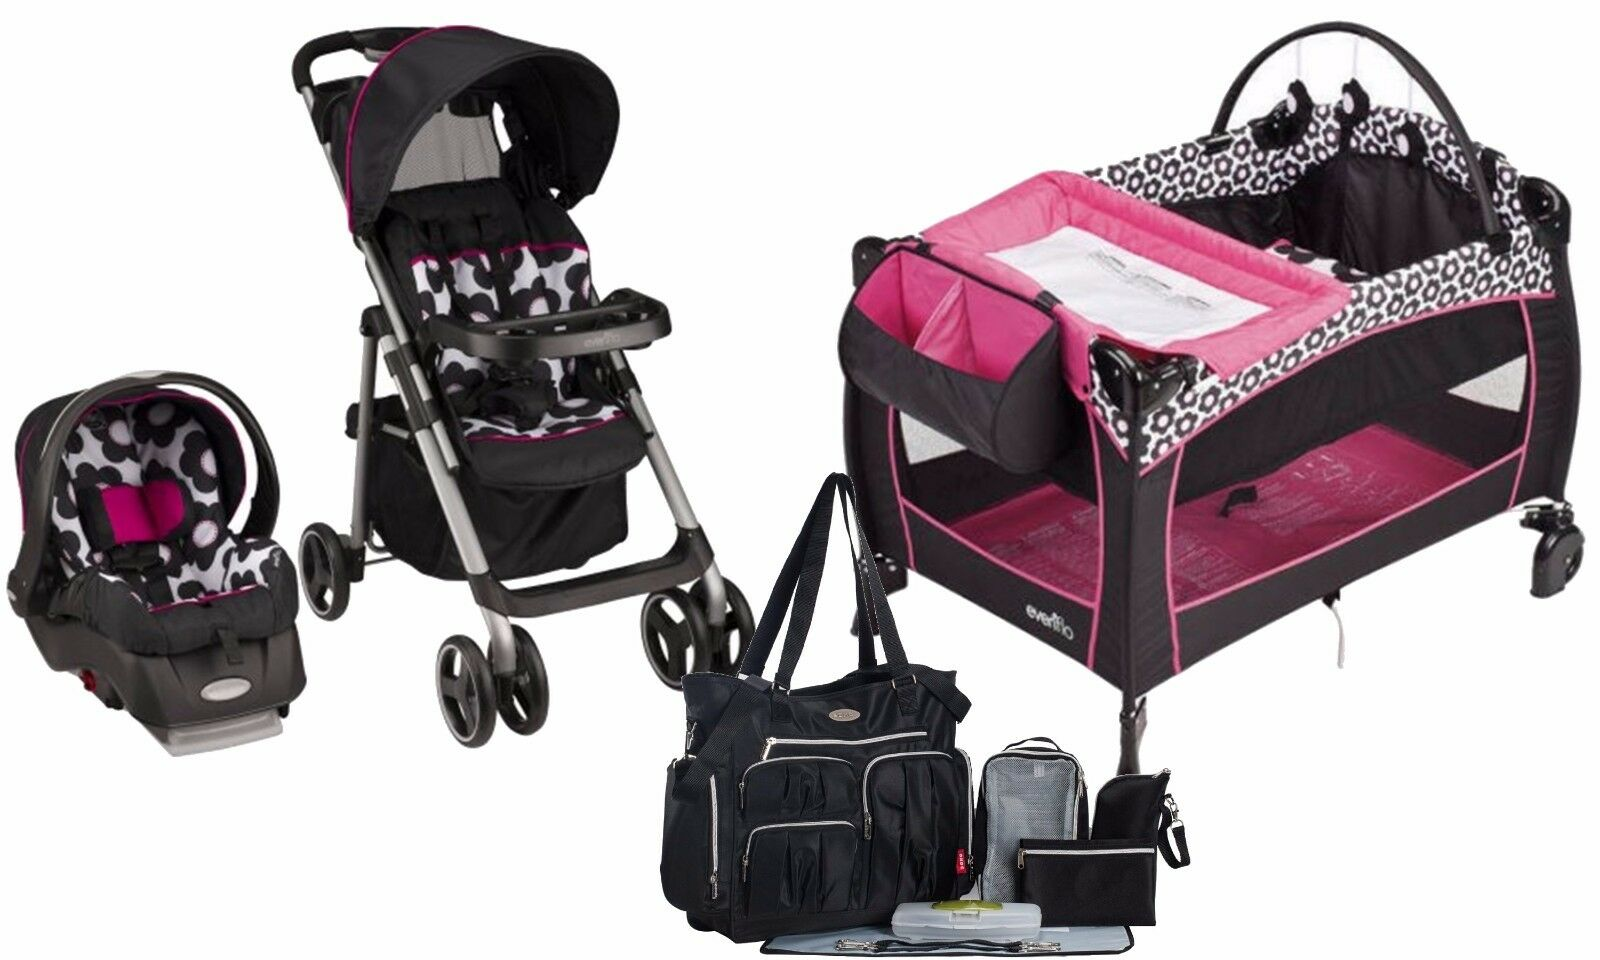 Baby Strollers And Car Seats: Baby Stroller Car Seat Travel System Diaper Bag Infant